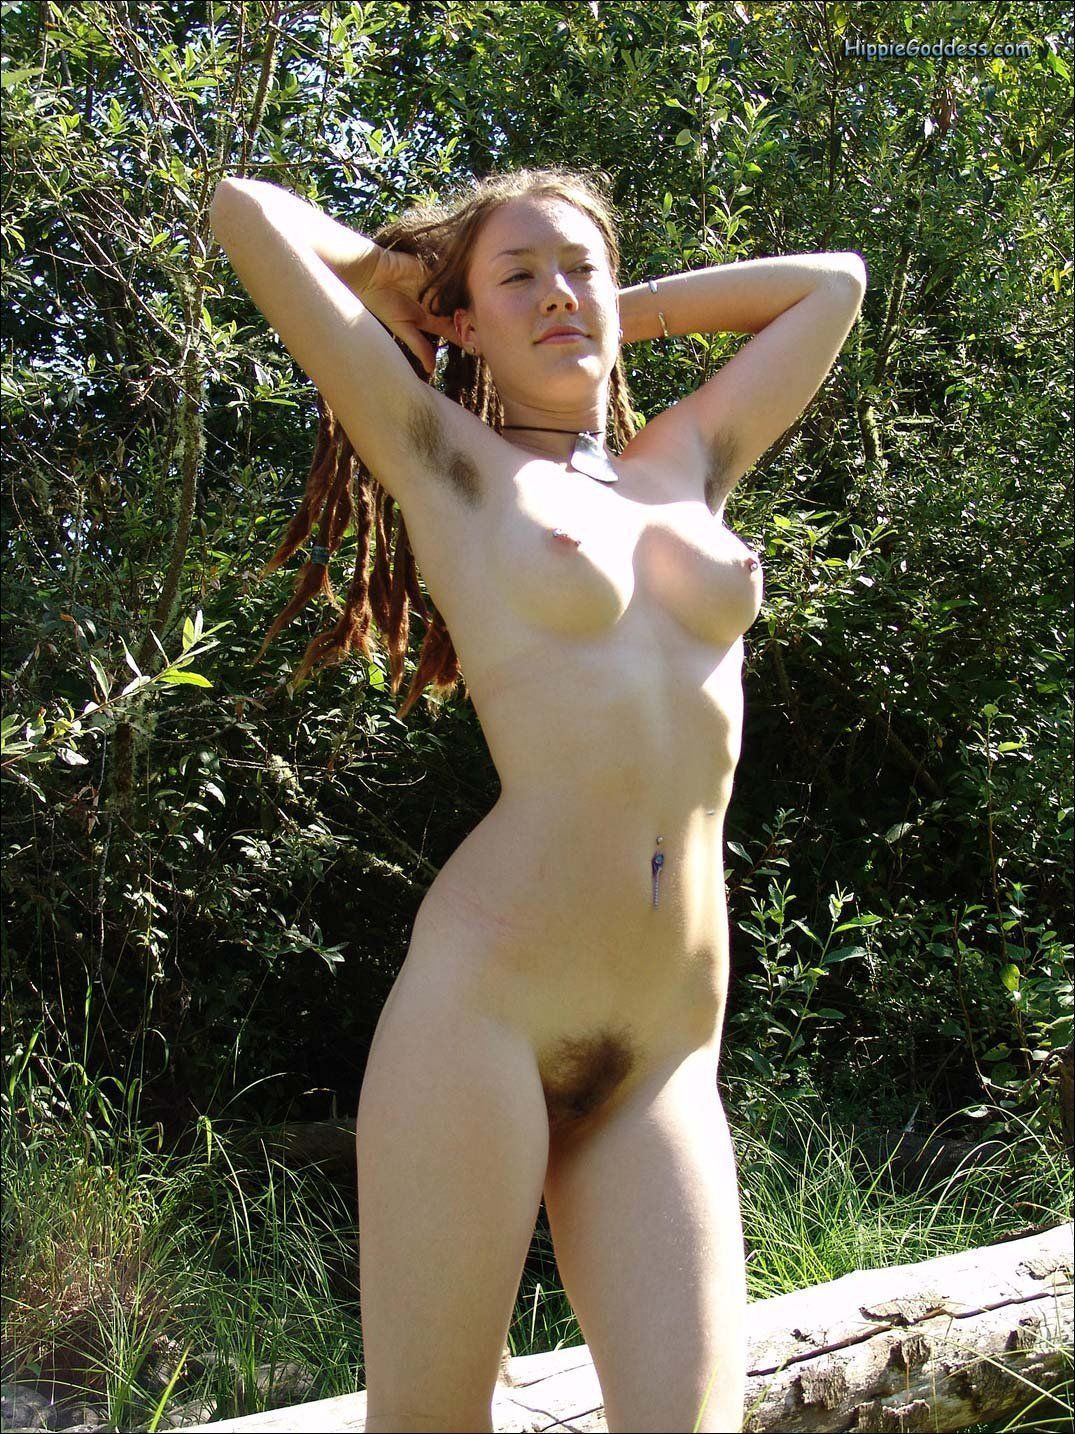 Pictures of sandra orlo nude